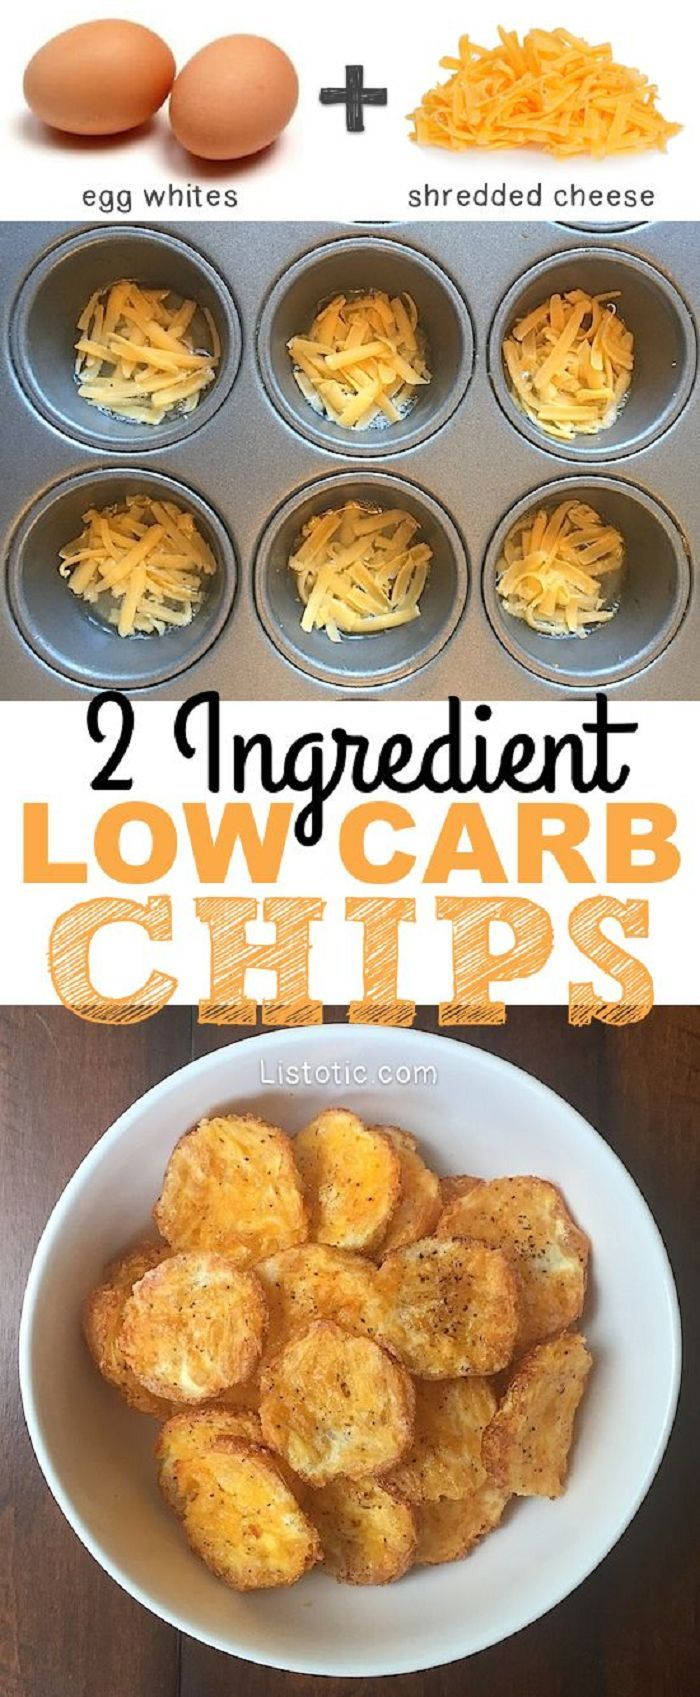 2 Ingredient Low Carb Chips #atkinsmeals